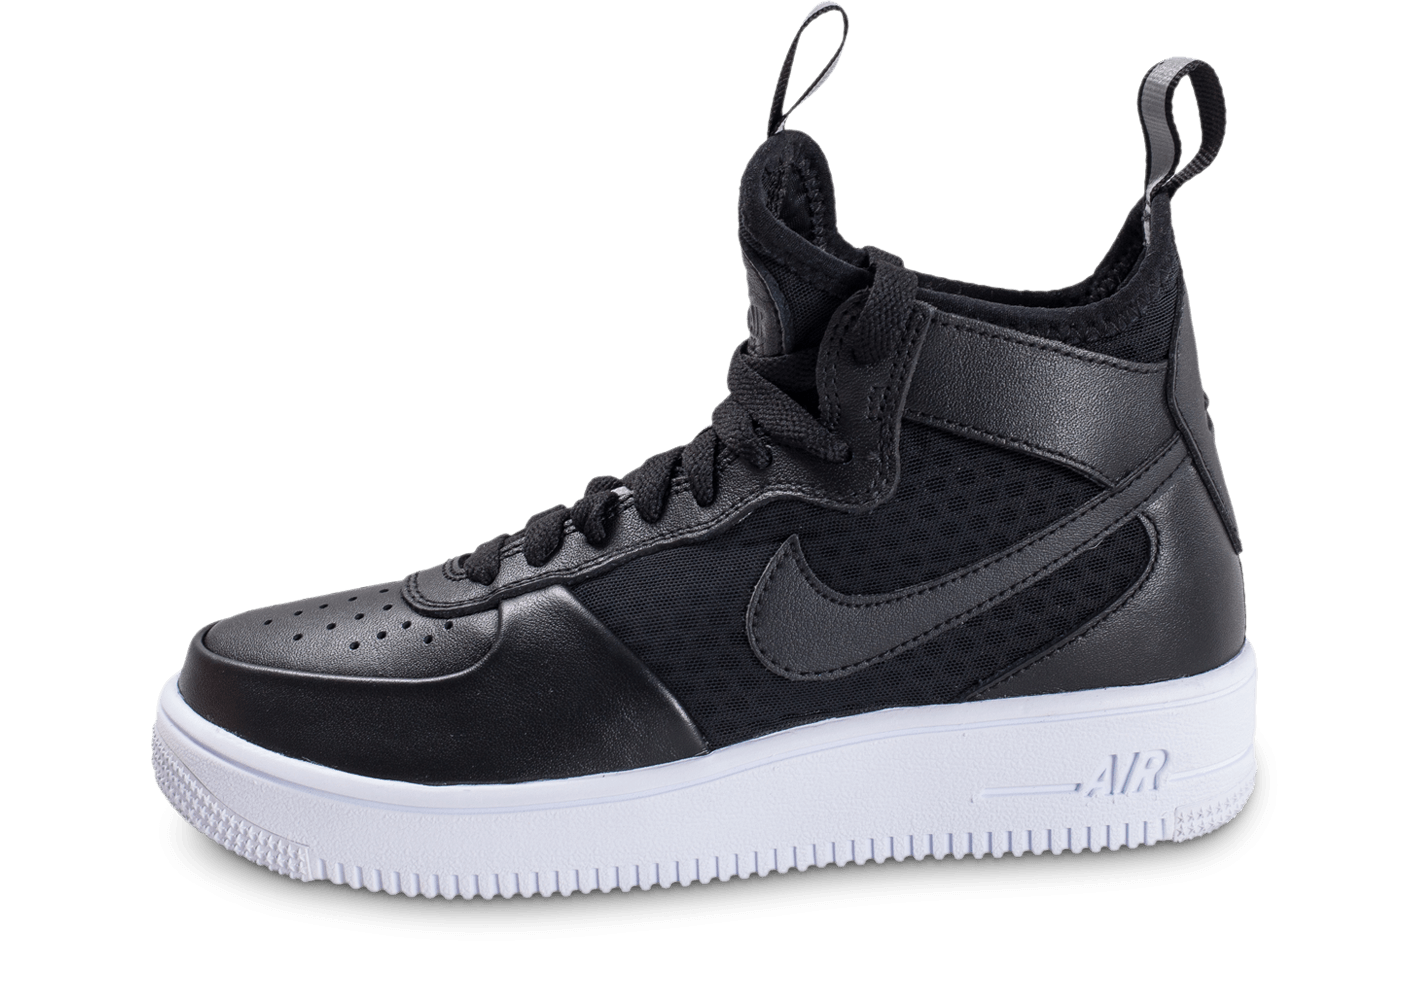 regarder 047f7 58565 Nike Chine Compensee Pas Nike Compensee Cher GMVLqpUzS